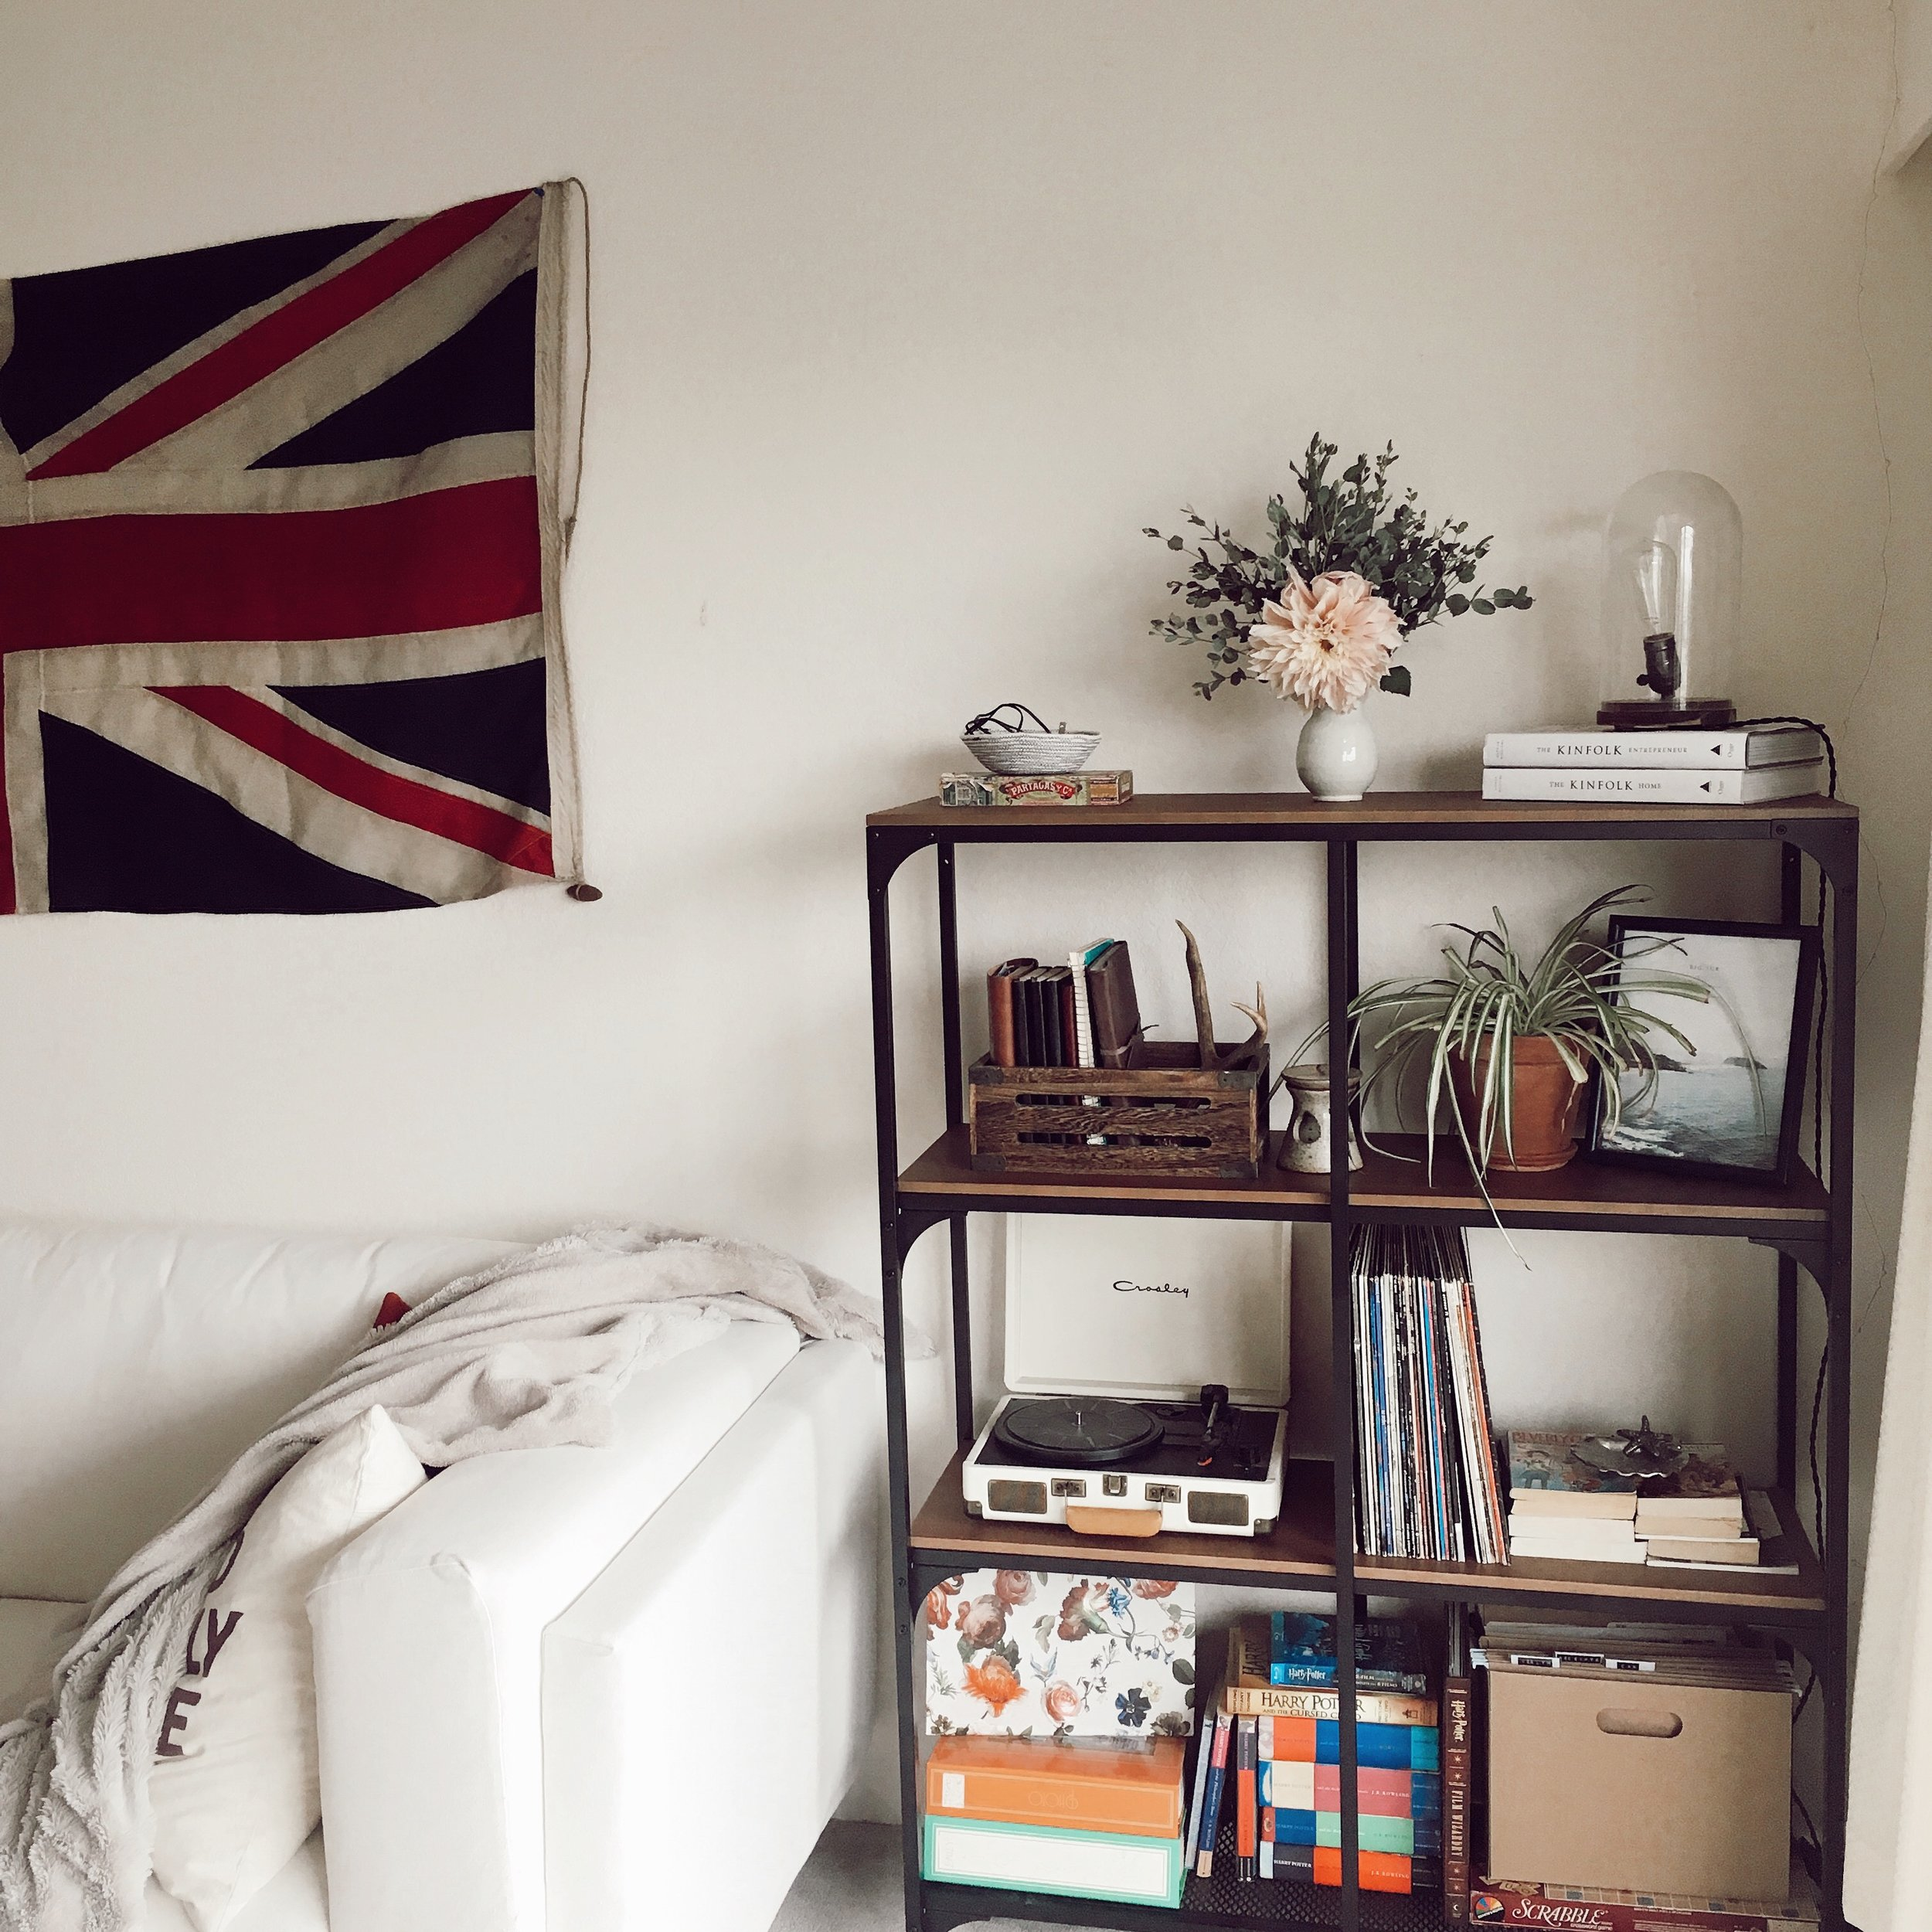 Cashmere & Plaid | lifestyle blog in Victoria BC - cozy living room featuring vintage union jack flag, industrial shelving, flowers, and DIY Ikea hack lamp